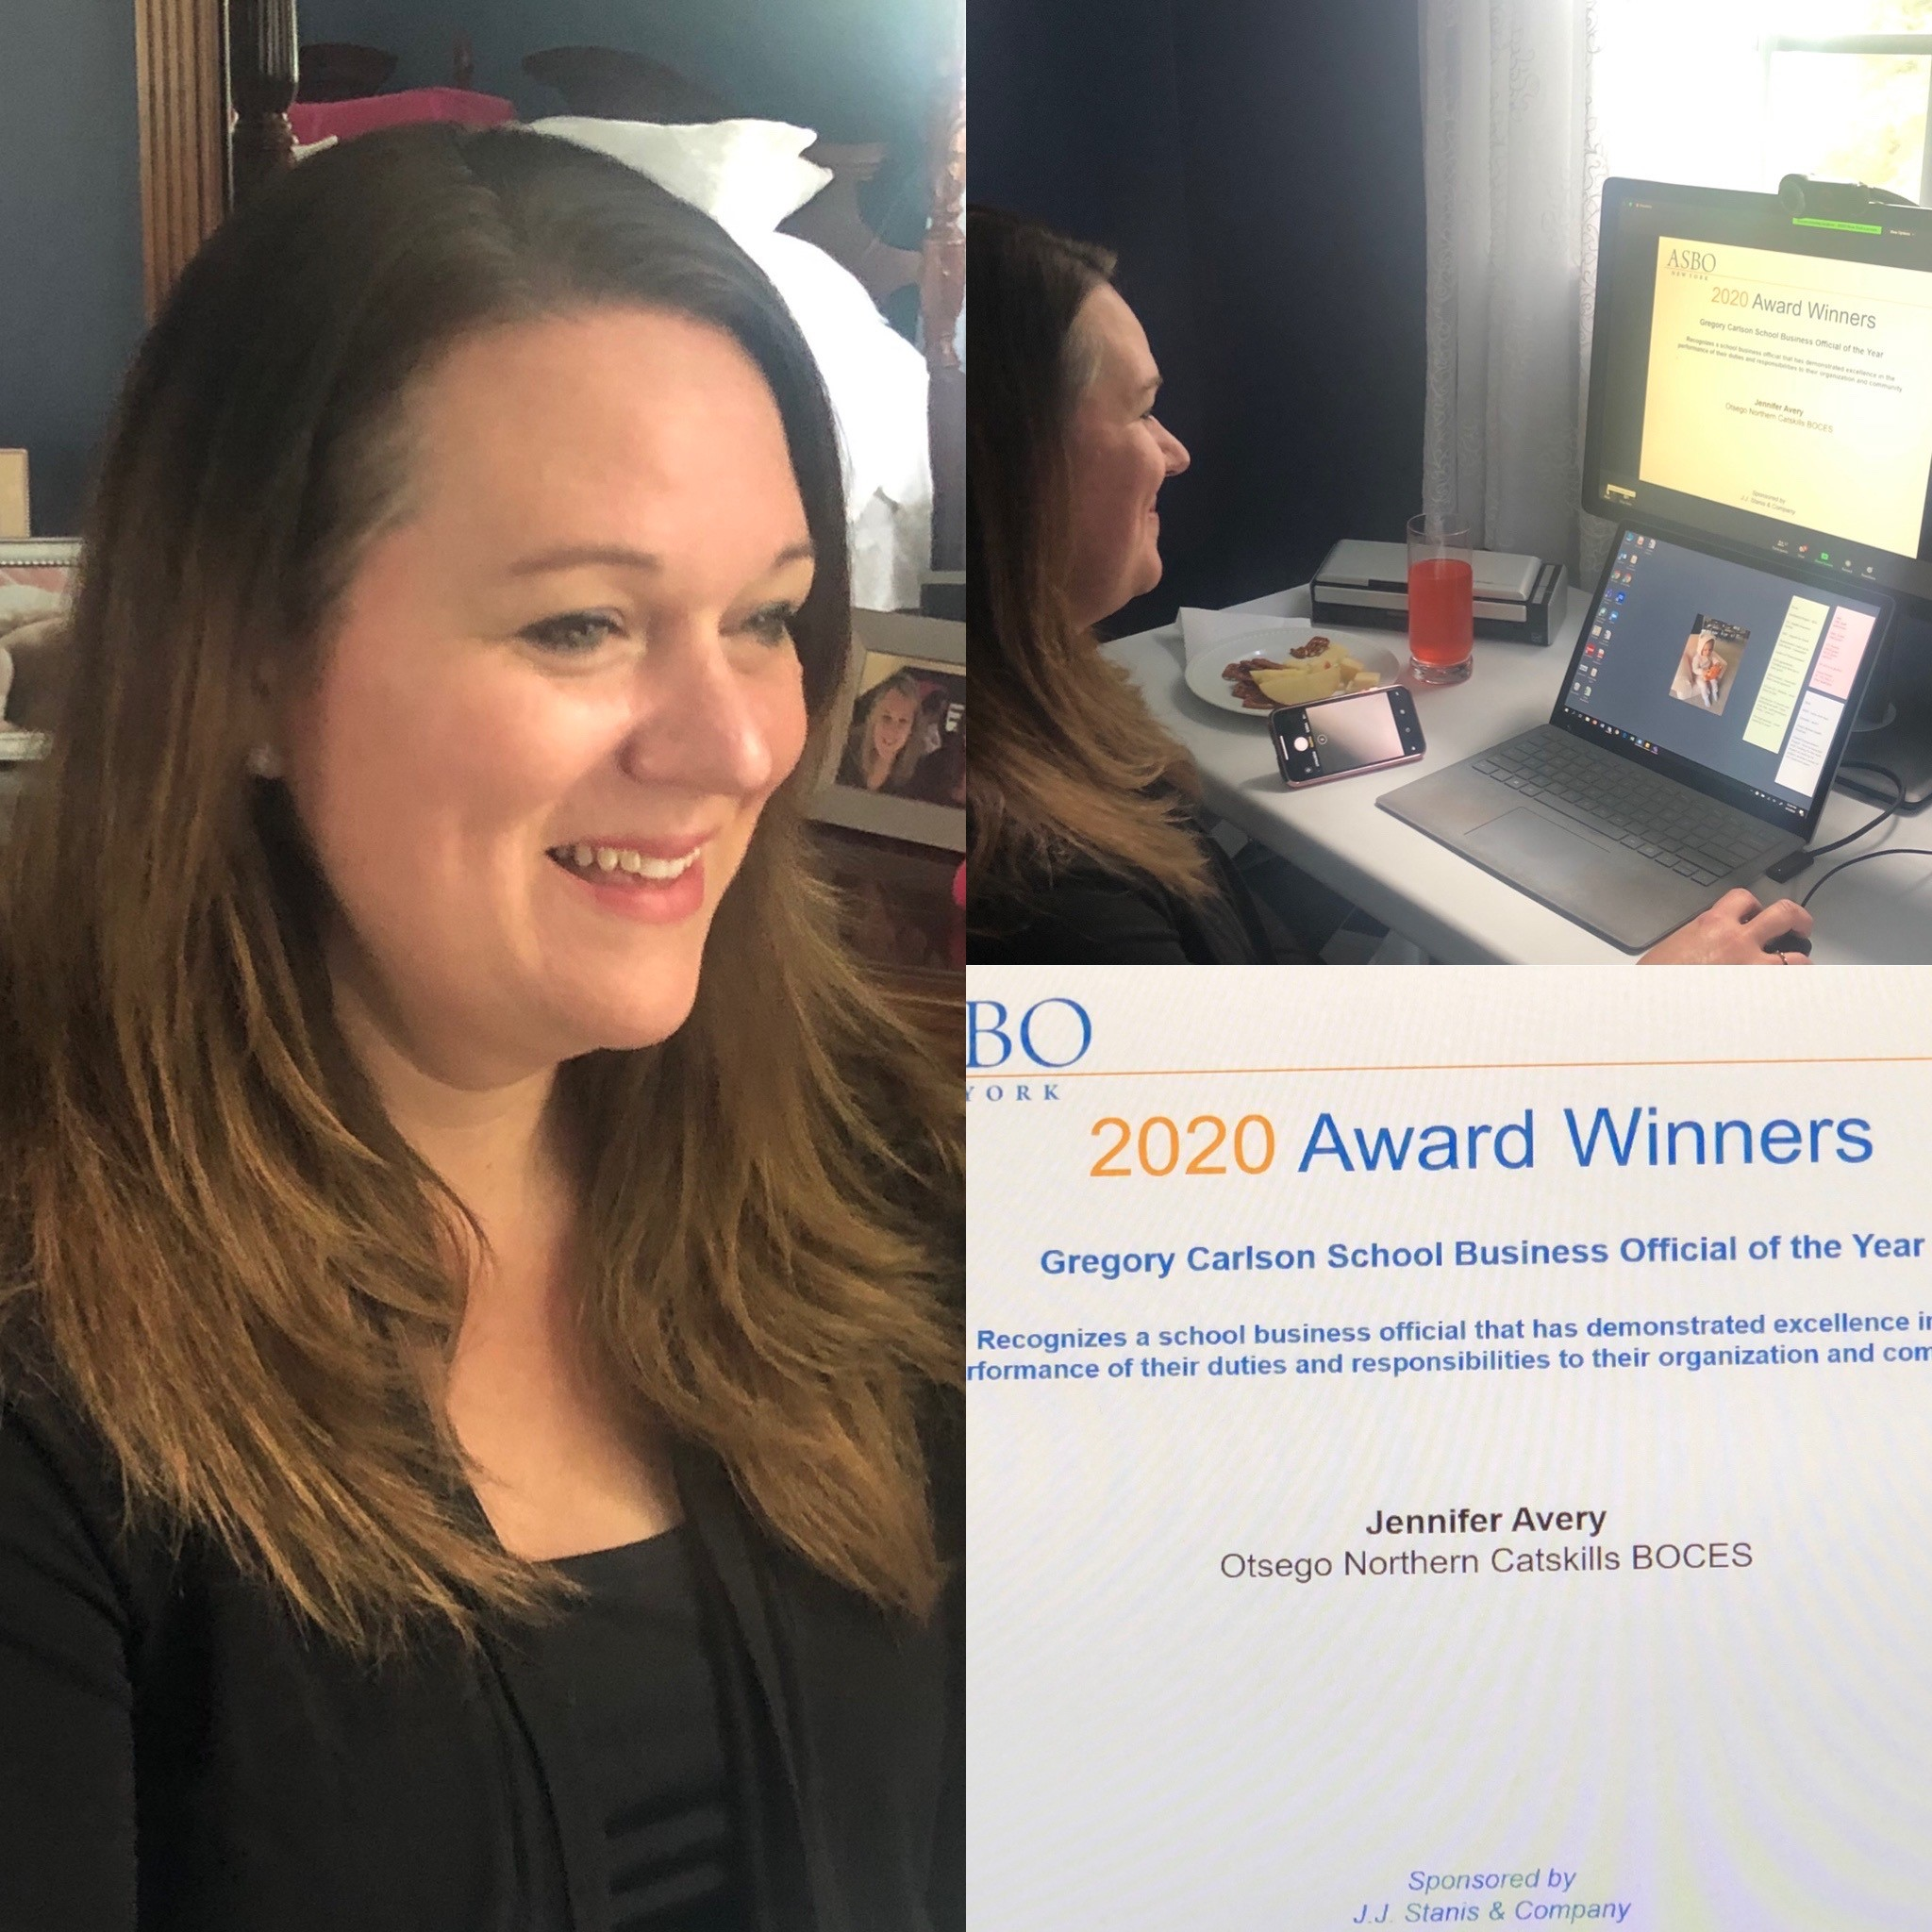 Dr. Avery accepting her award via Zoom